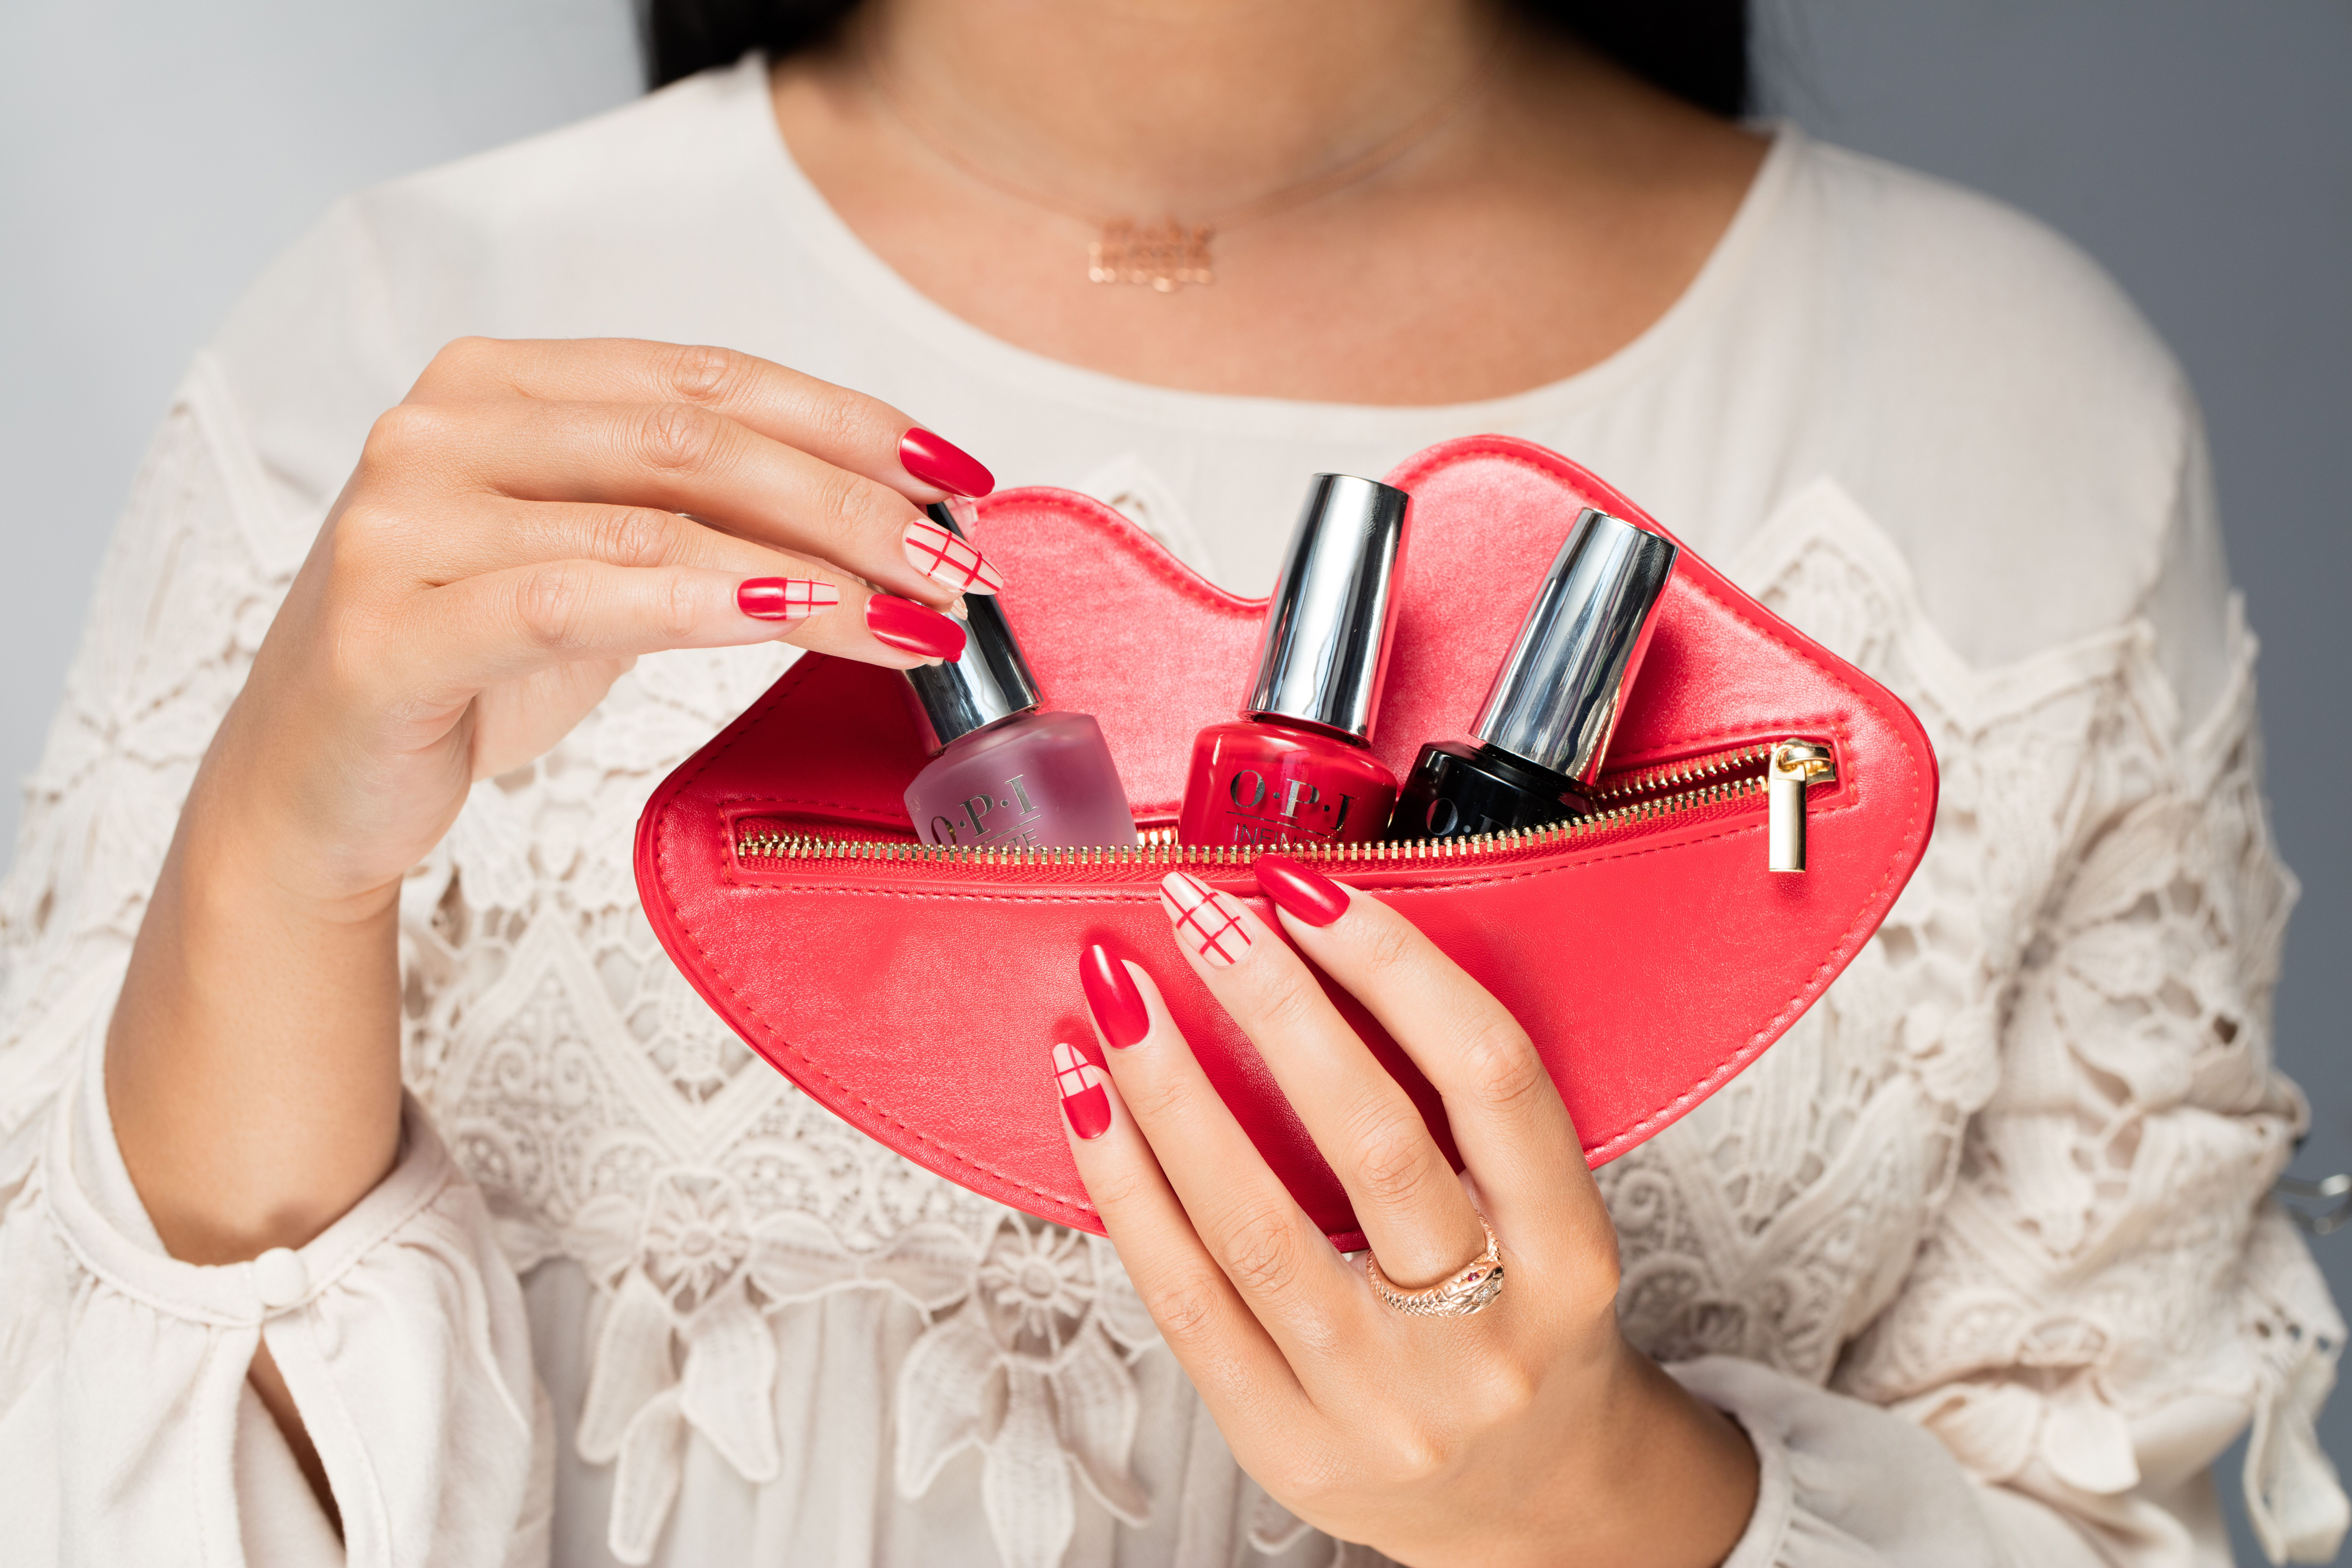 Achieve a long lasting manicure in just three easy steps! #InfiniteShine all day!